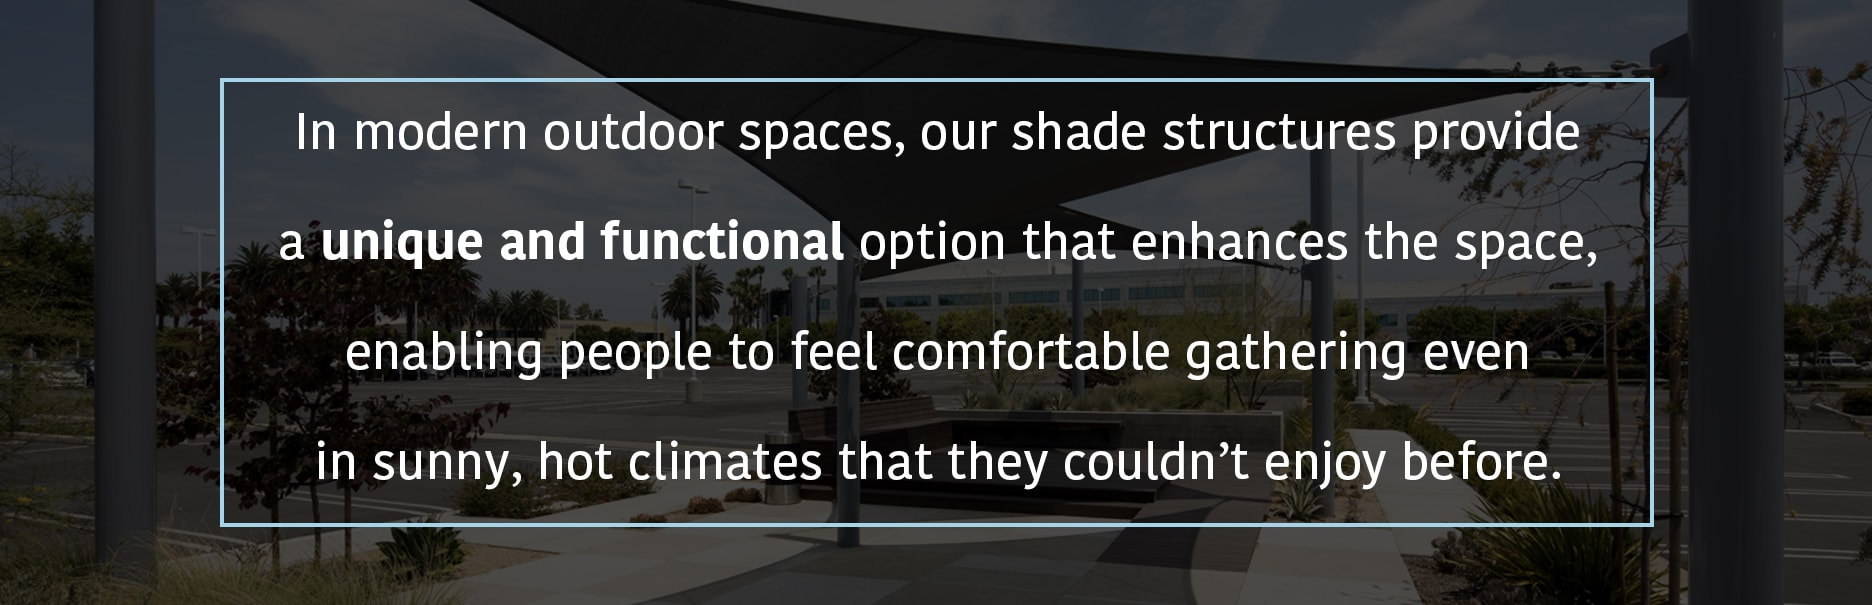 Shade Structures For Hot Climates